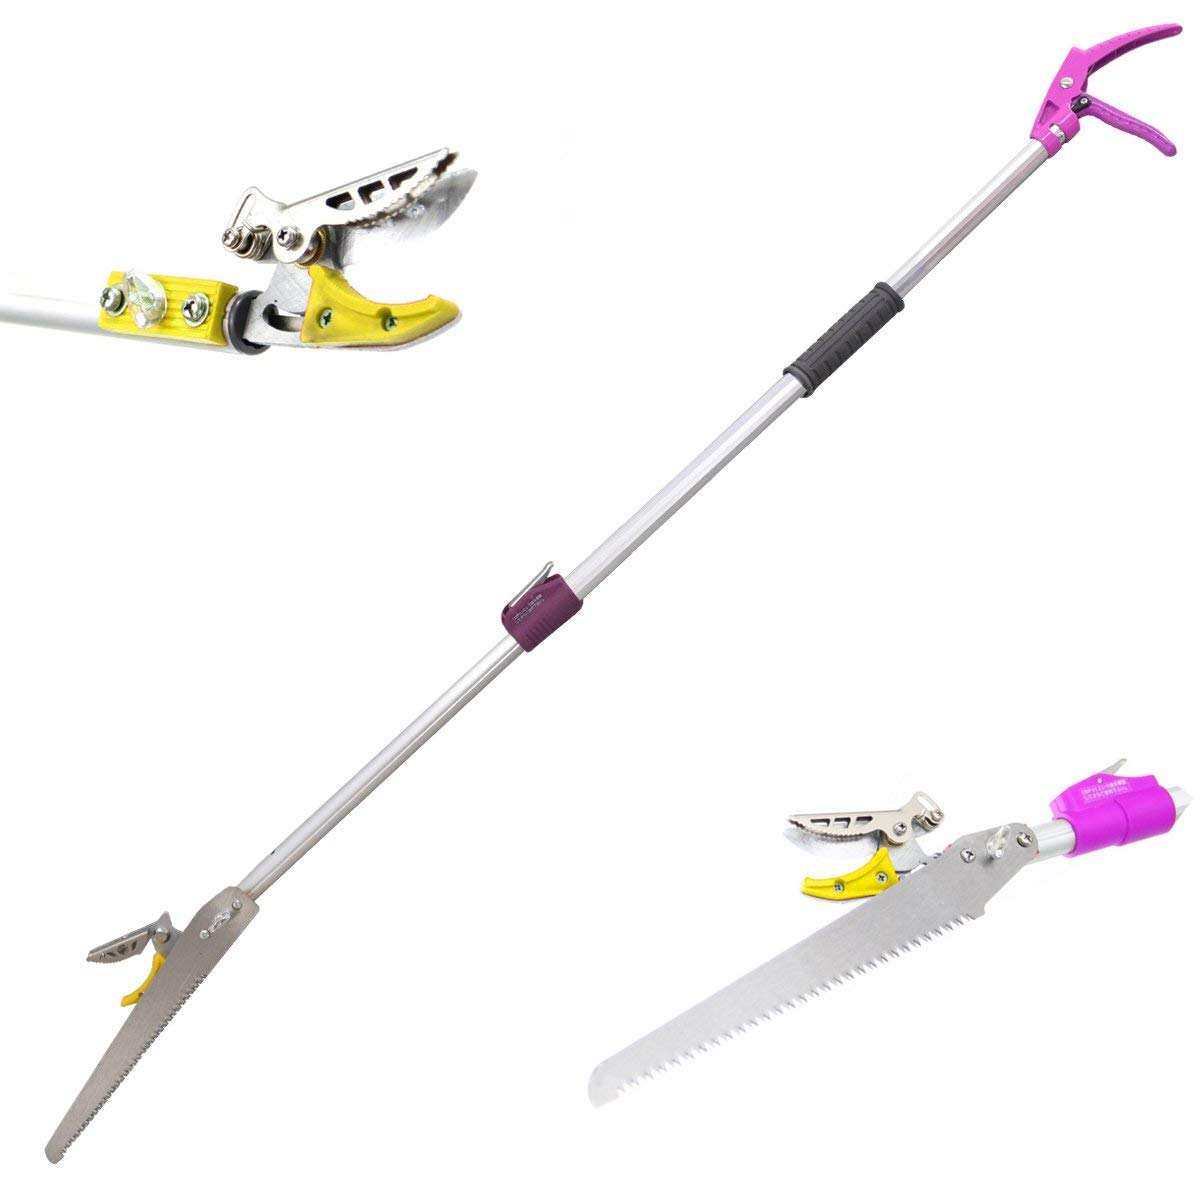 DCM Telescoping Cut and Hold Long Reach Bypass Garden Pruner, Pole Saw